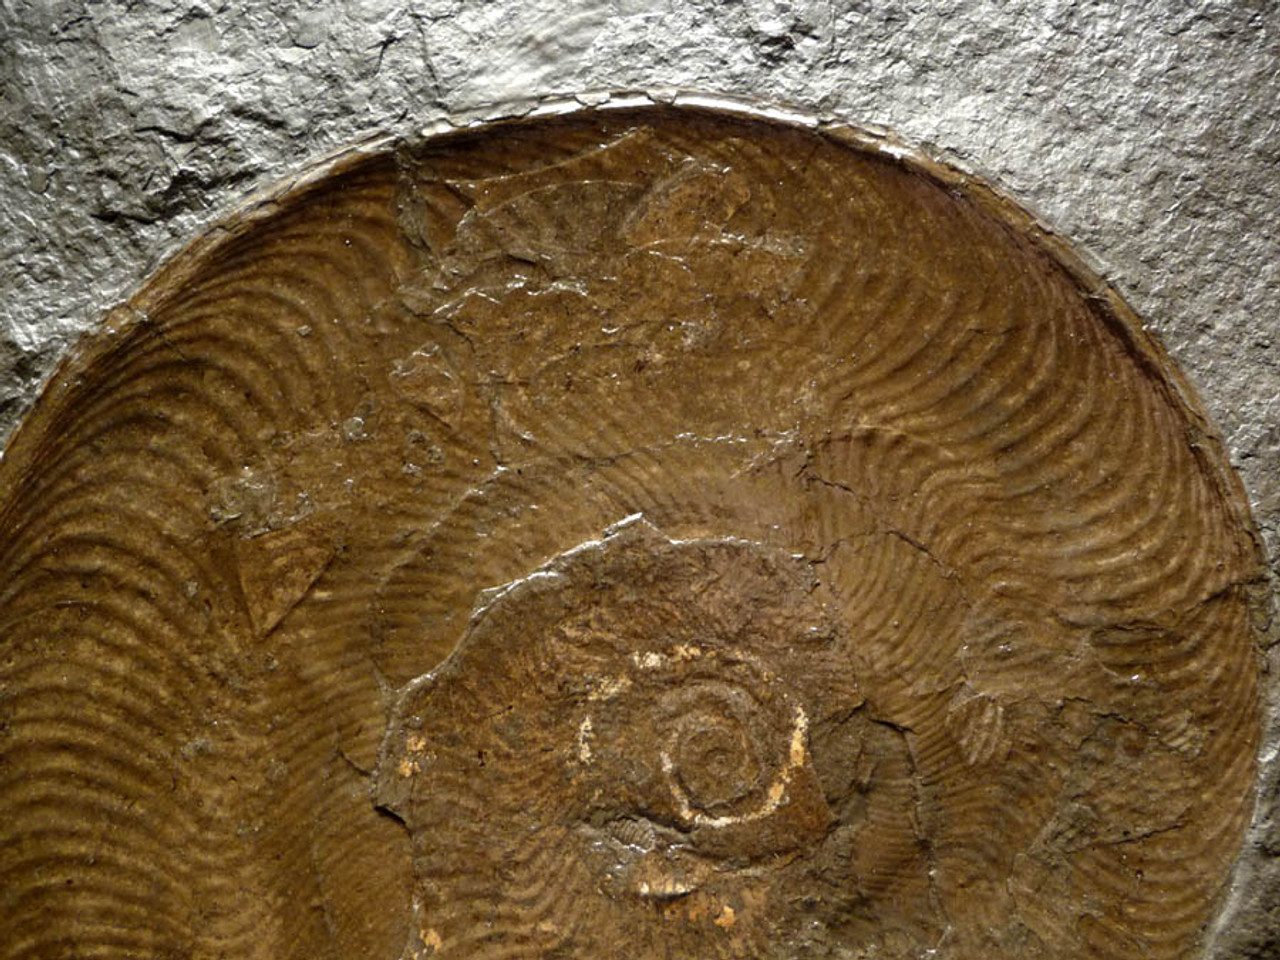 LARGE INTERIOR DESIGN ACCENT FOSSIL BLACK SHALE SLAB WITH 9 INCH GOLD PYRITE HARPOCERAS AMMONITE *AMX213